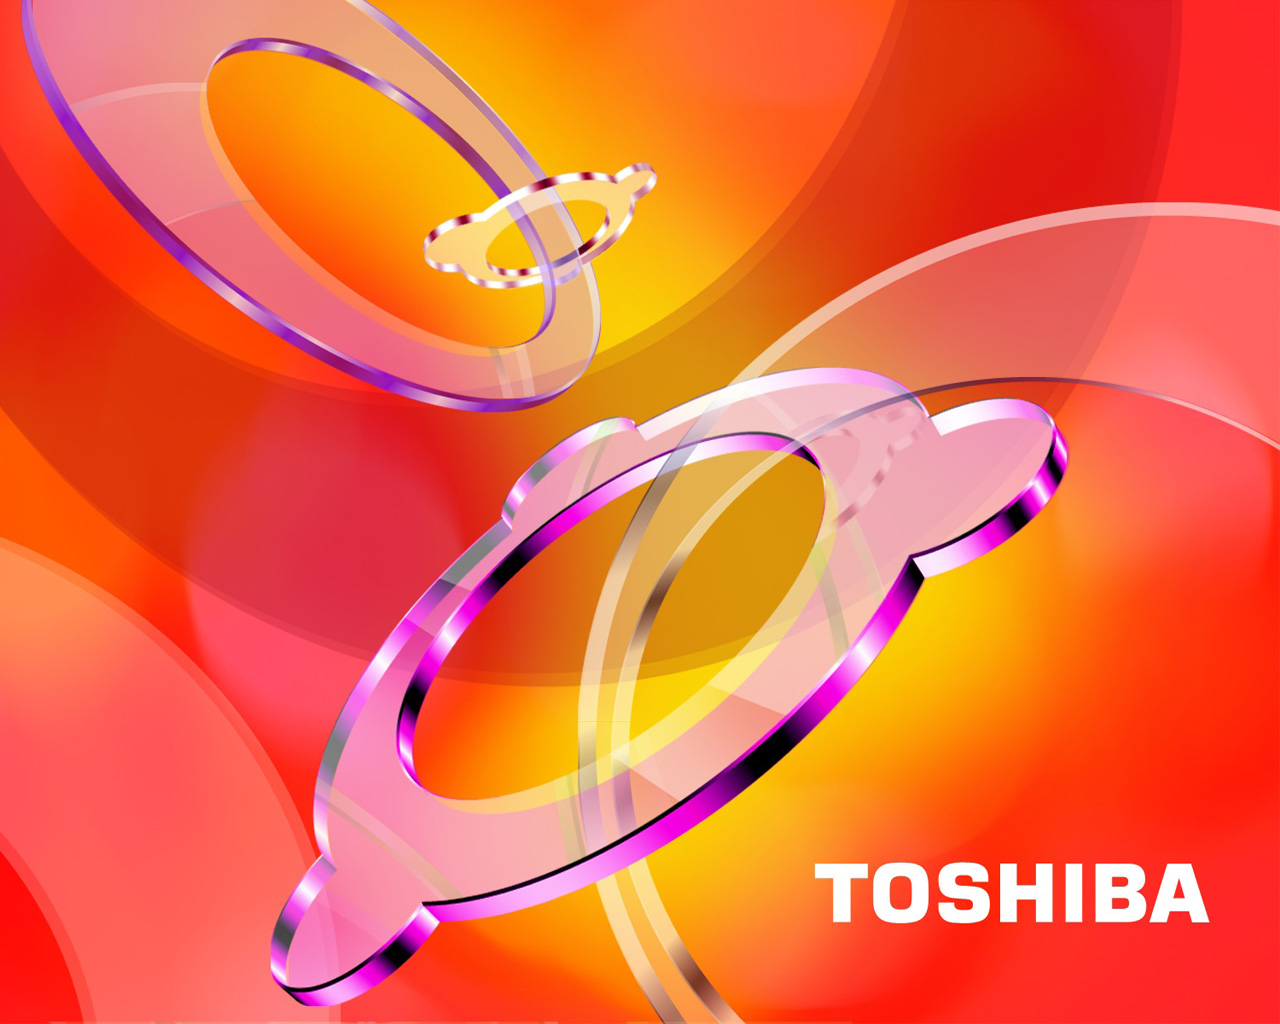 Toshiba Intense Colors